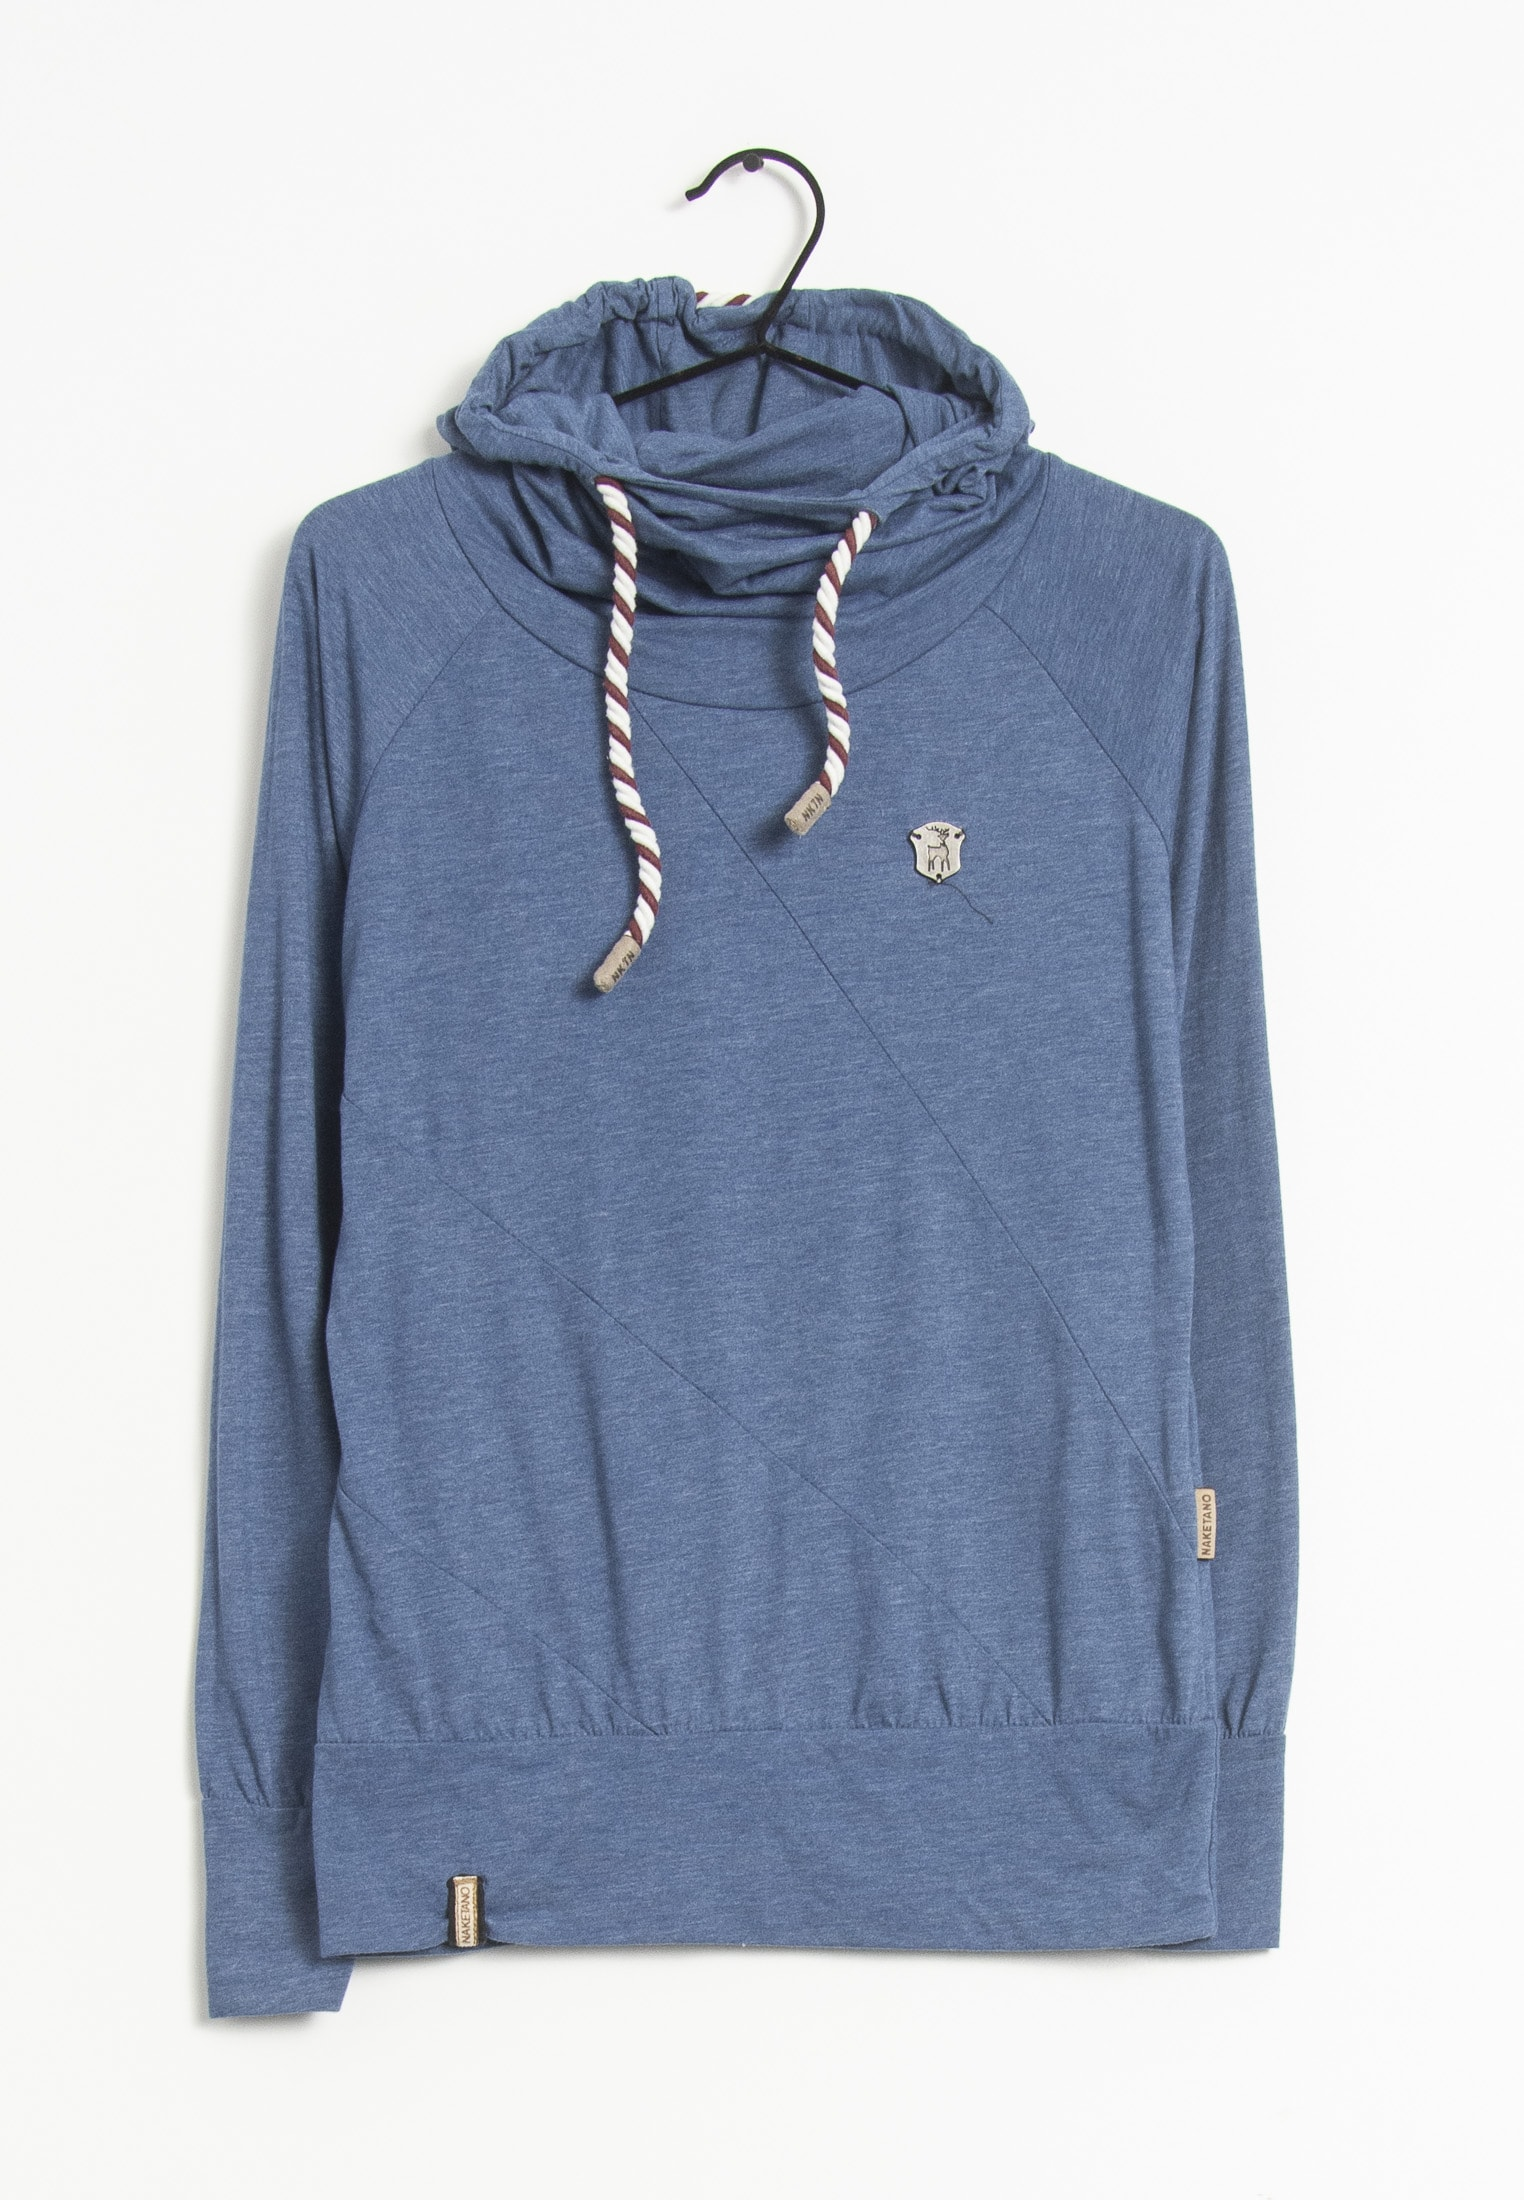 Naketano Sweat / Fleece Blau Gr.M